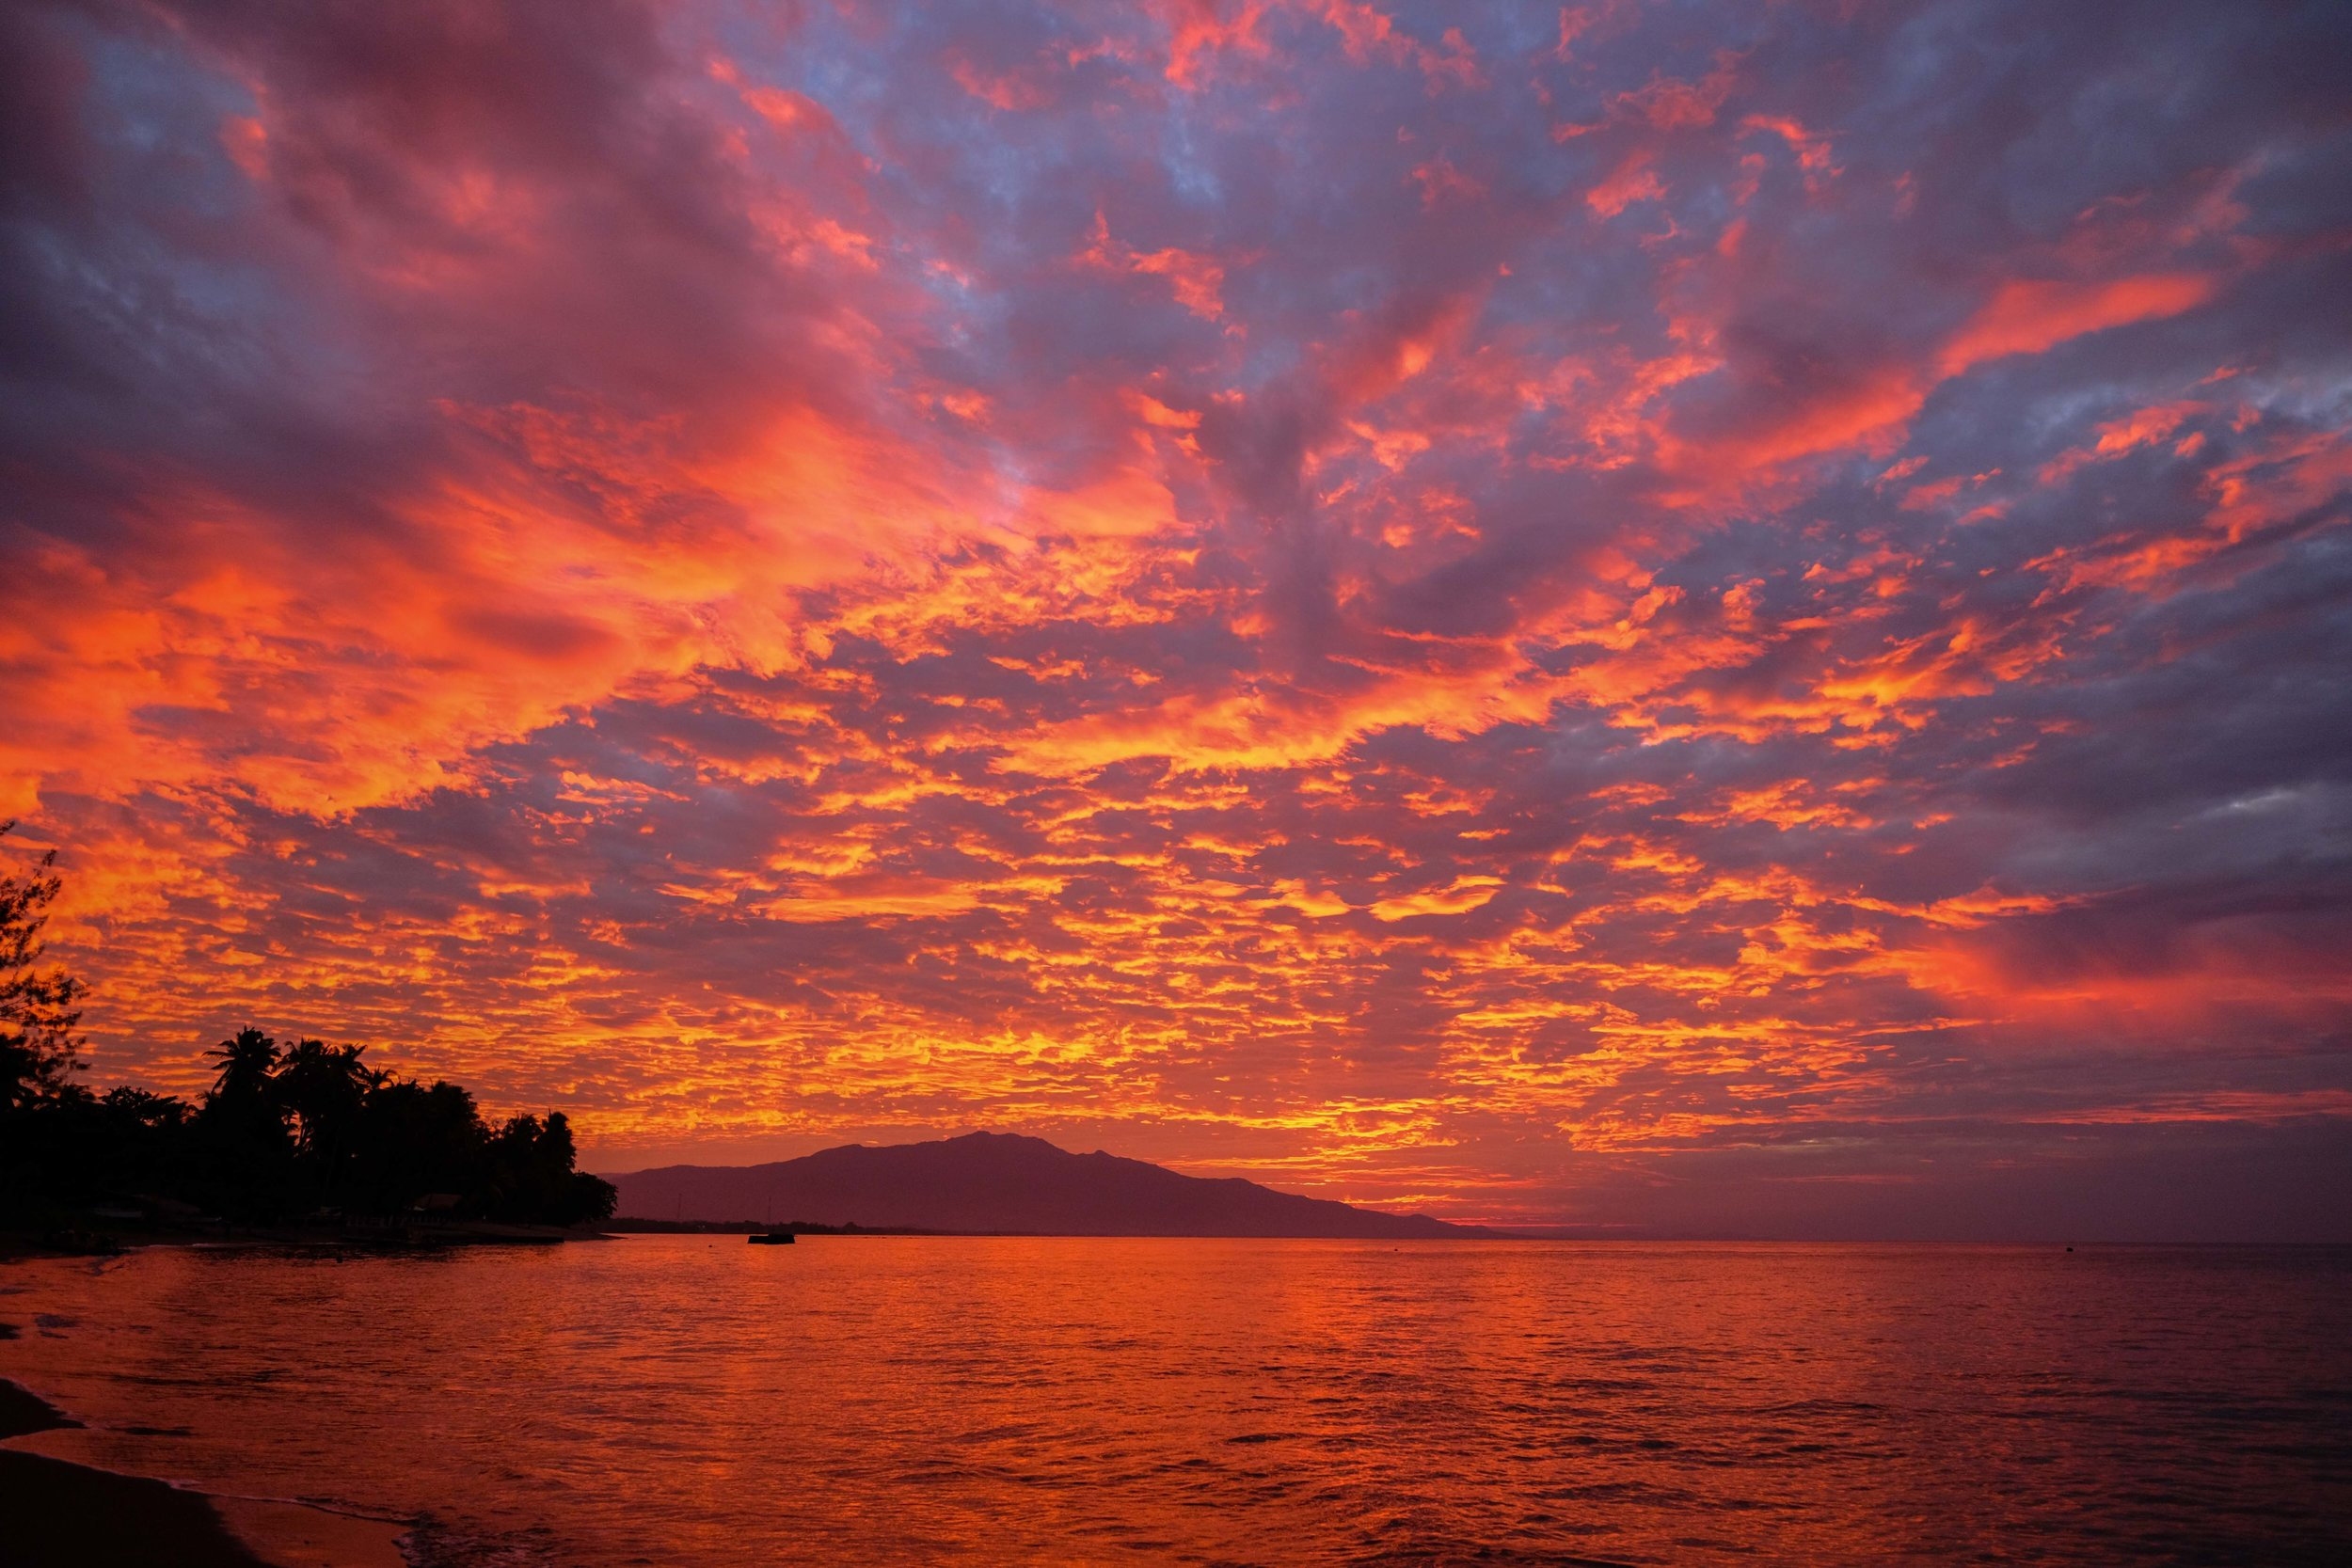 An incredible sunset over Maumere, on the east coast of Flores